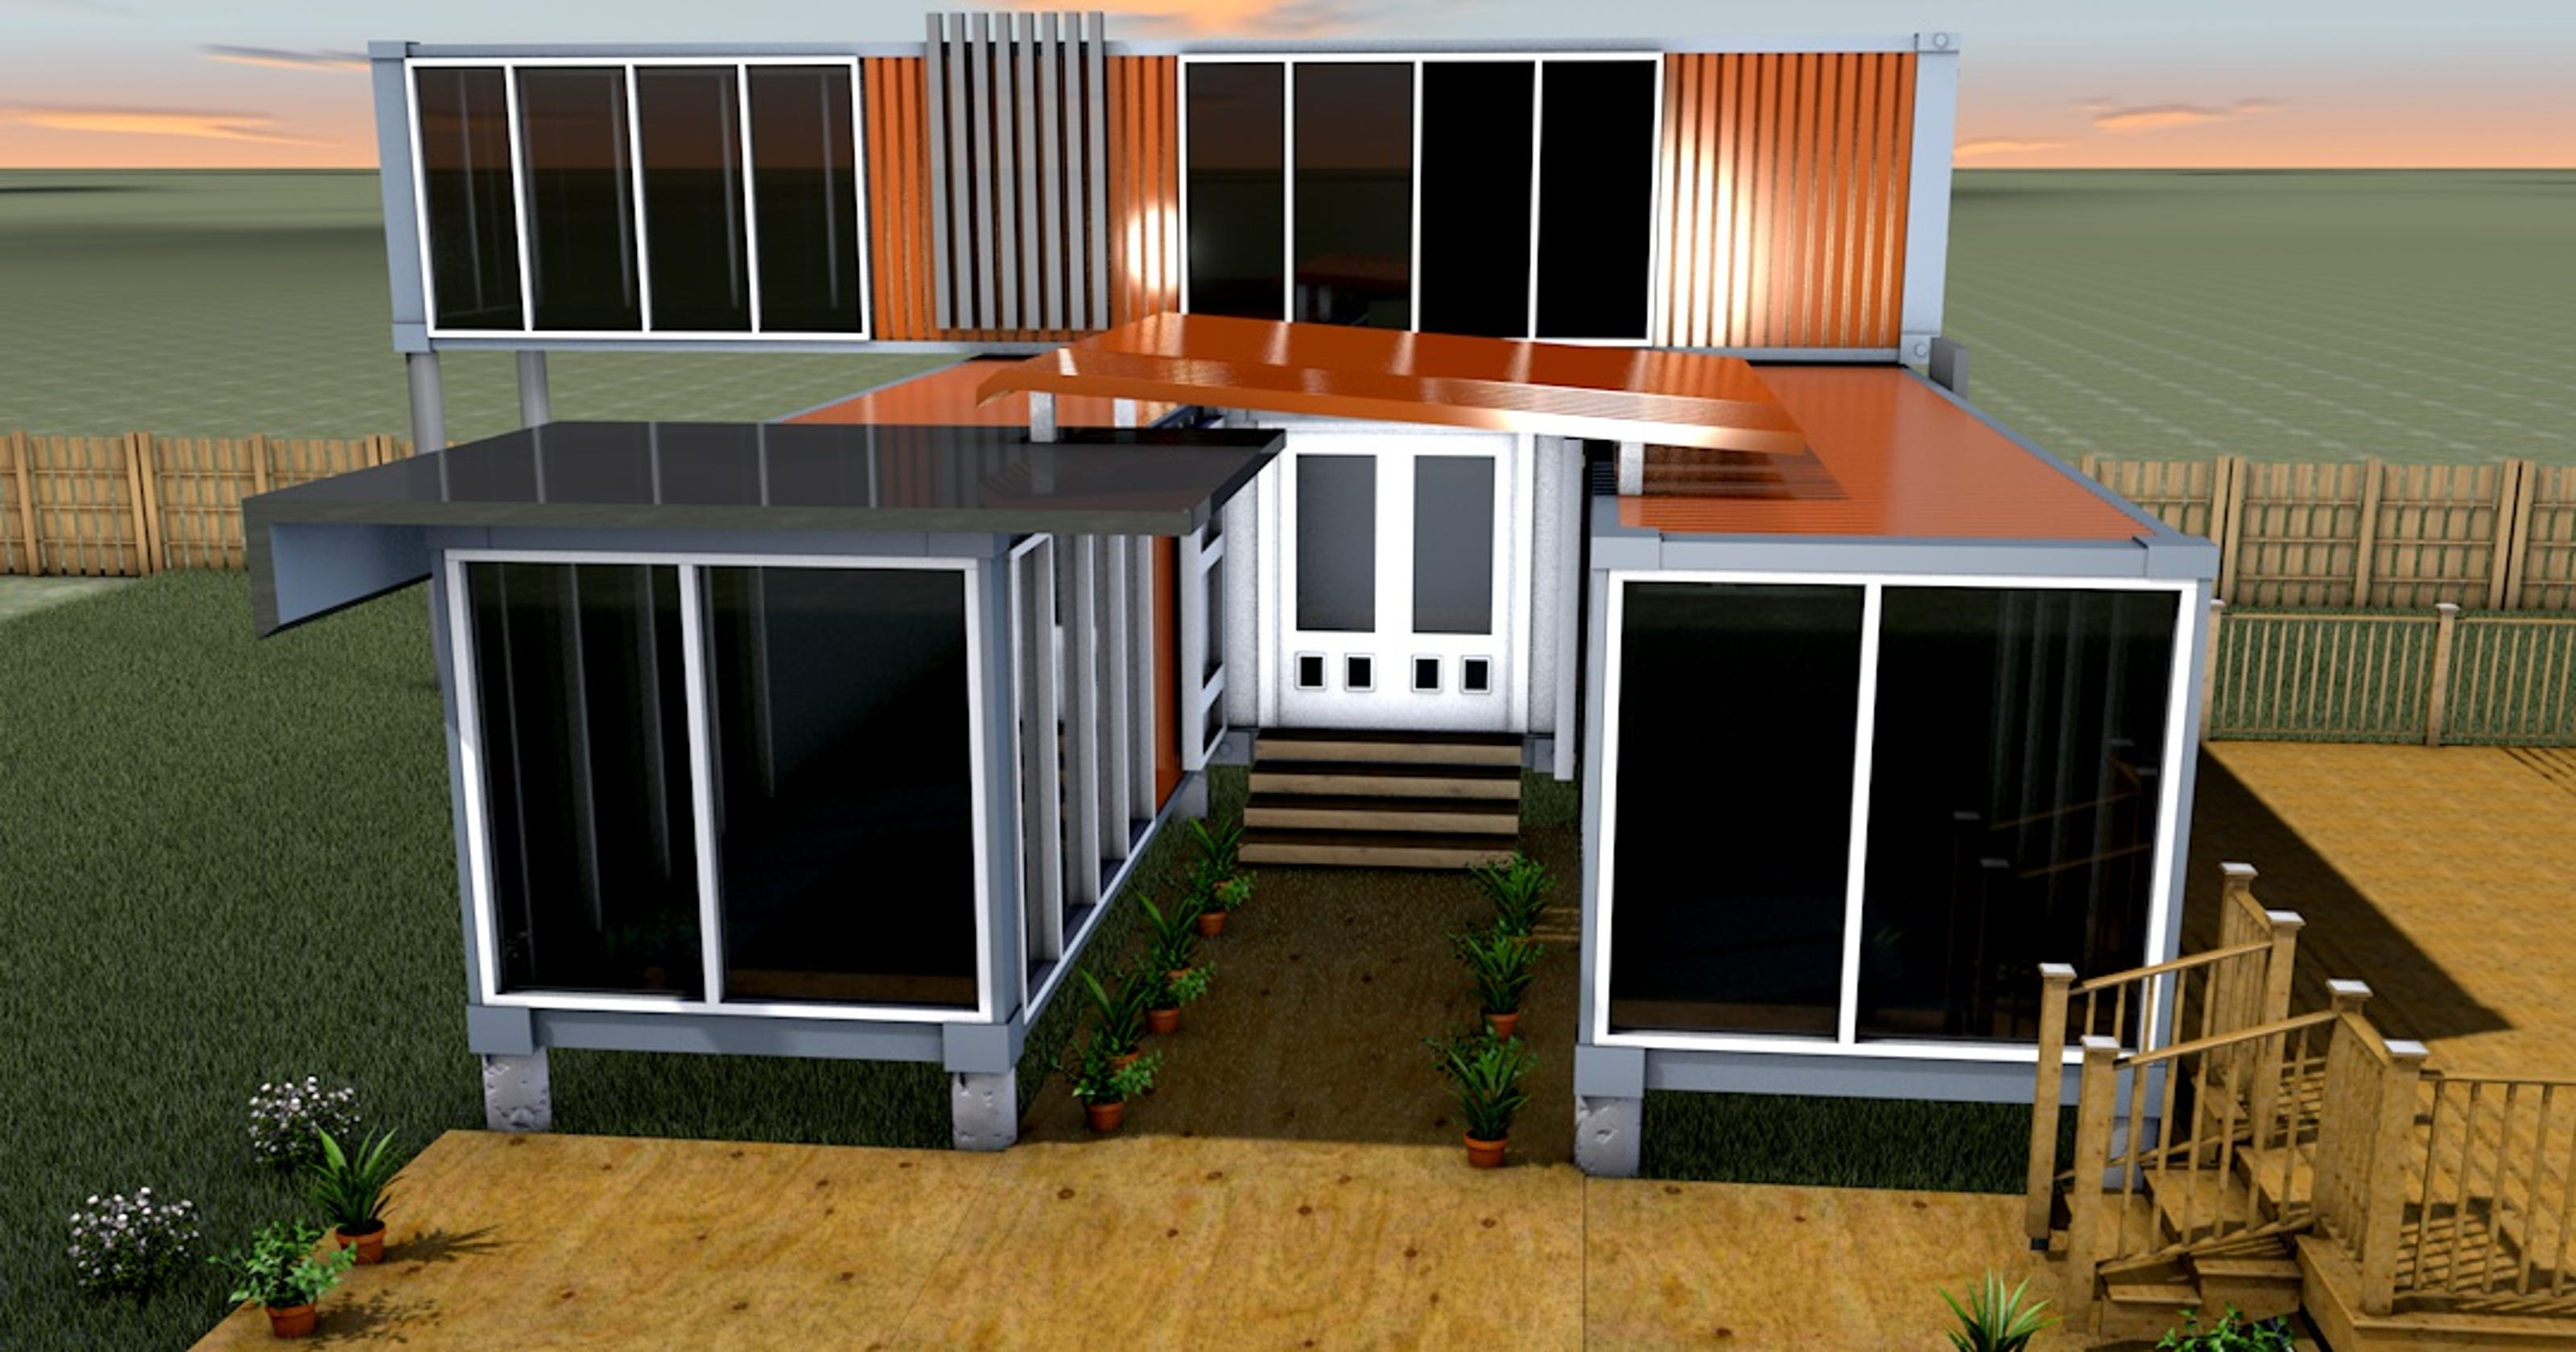 Shipping-container homes take root in Valley on